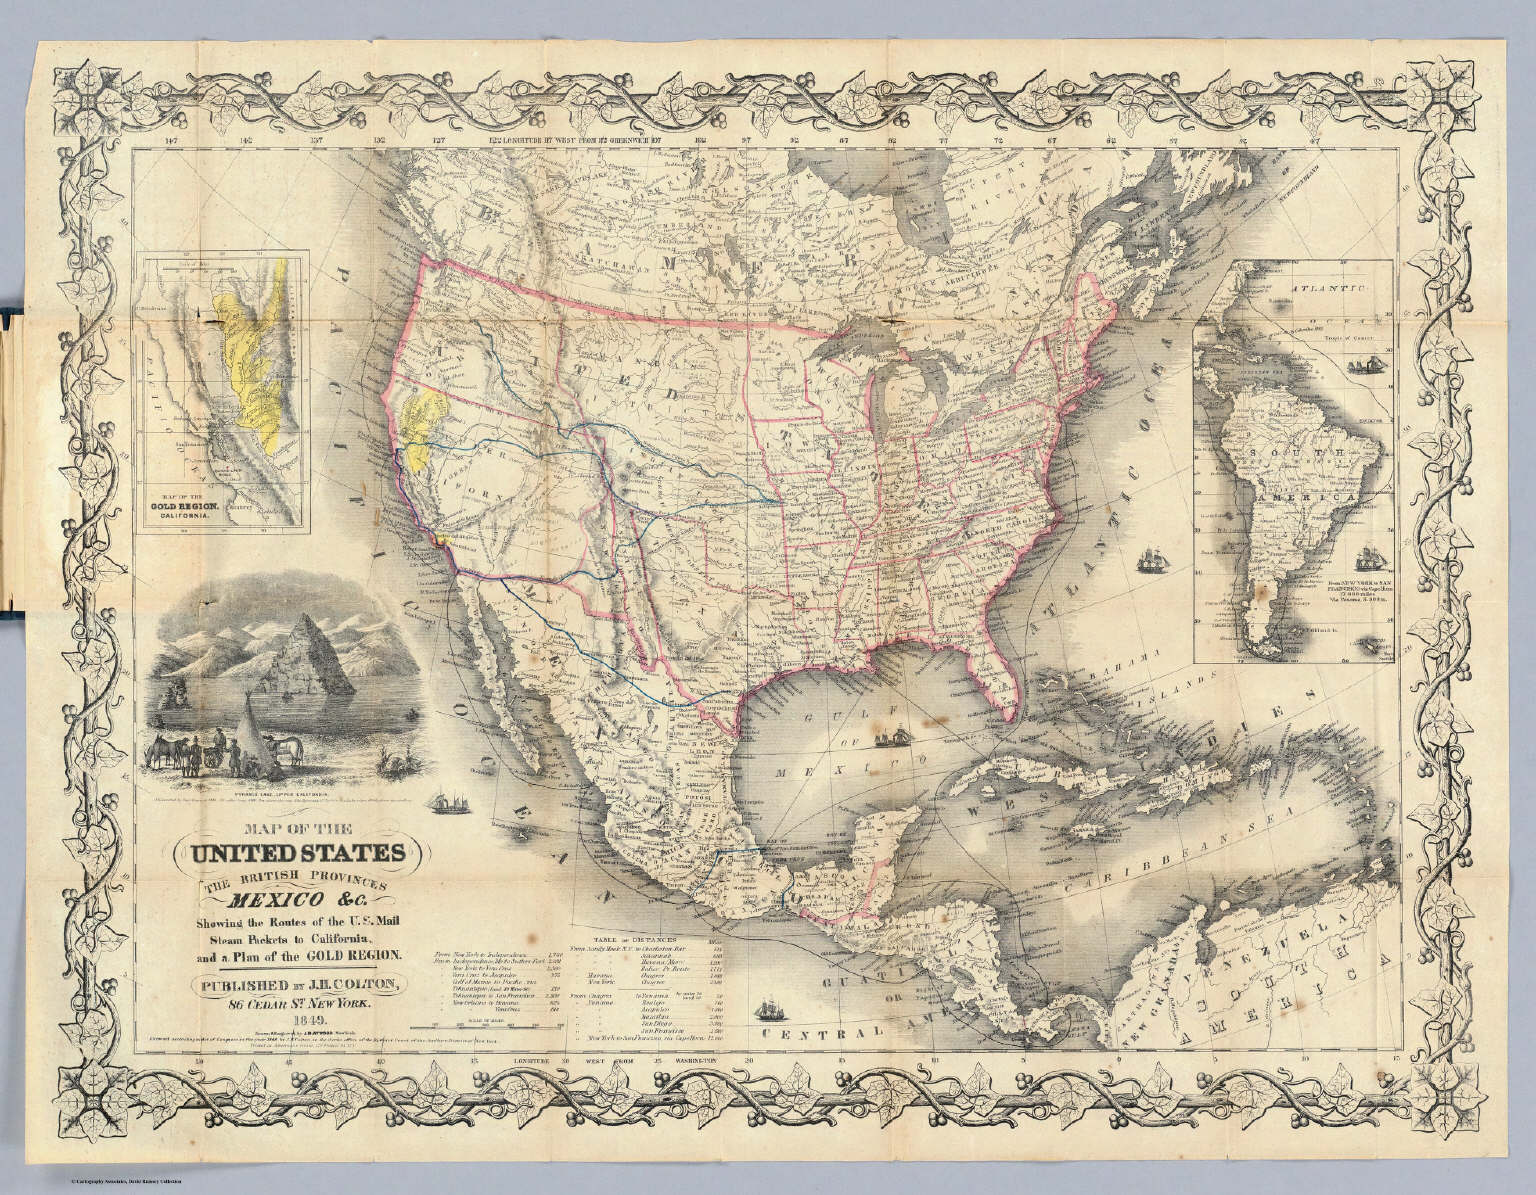 map of the united states the british provinces mexico c